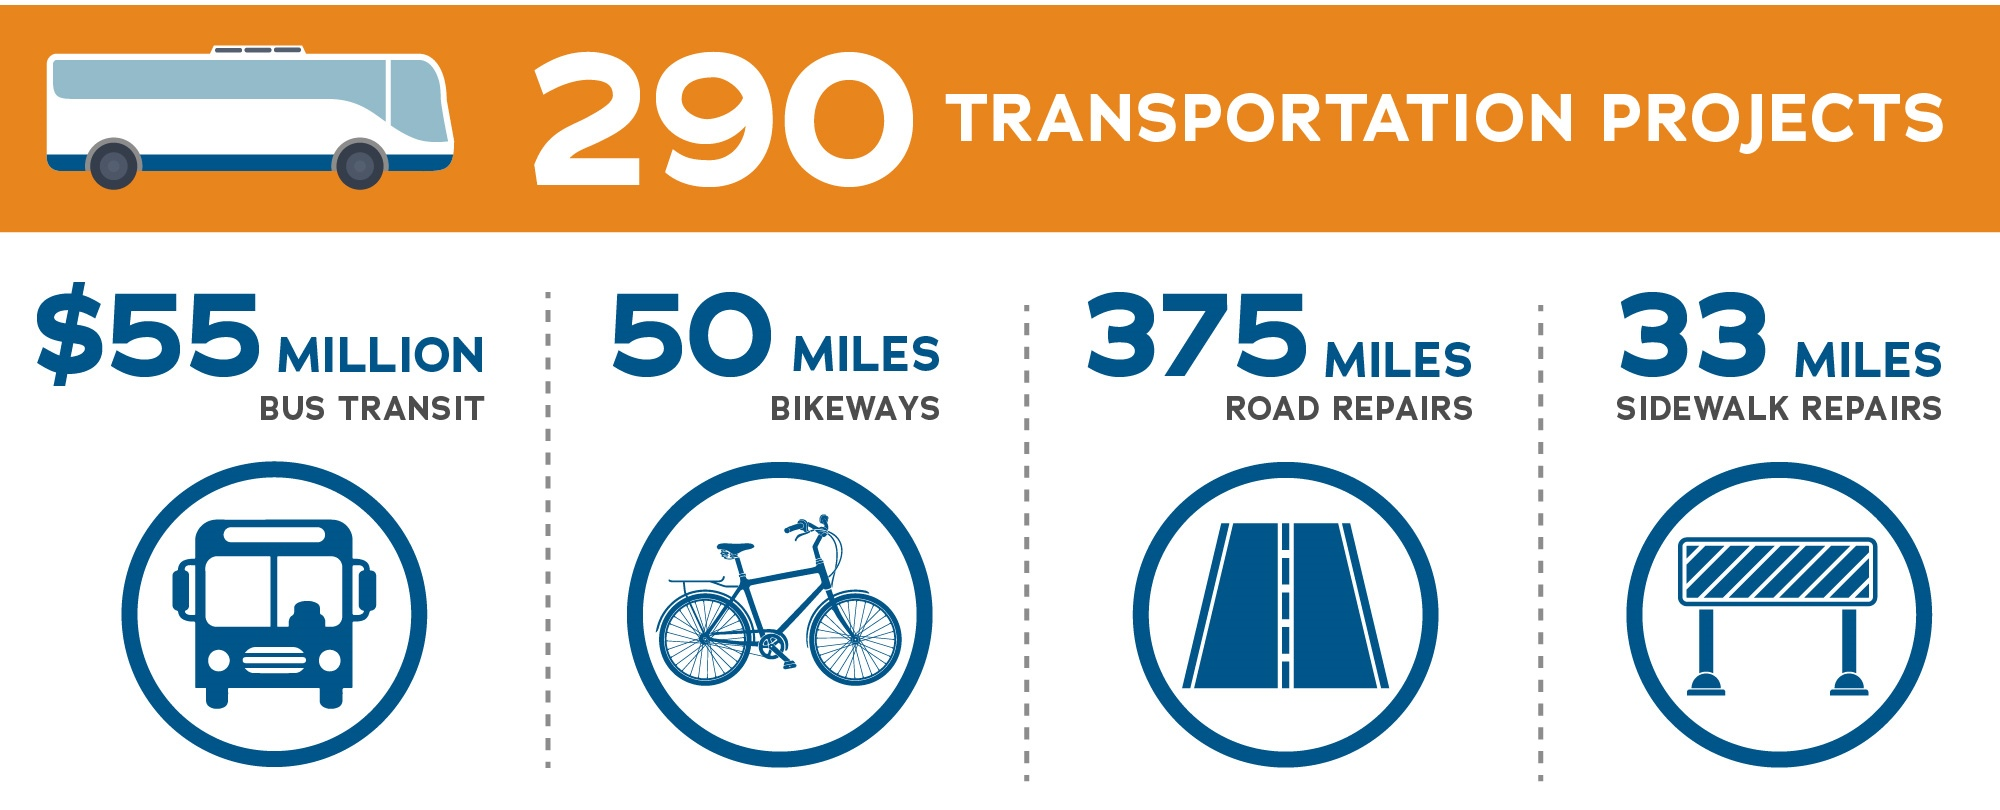 290 Transportation Projects Graphic